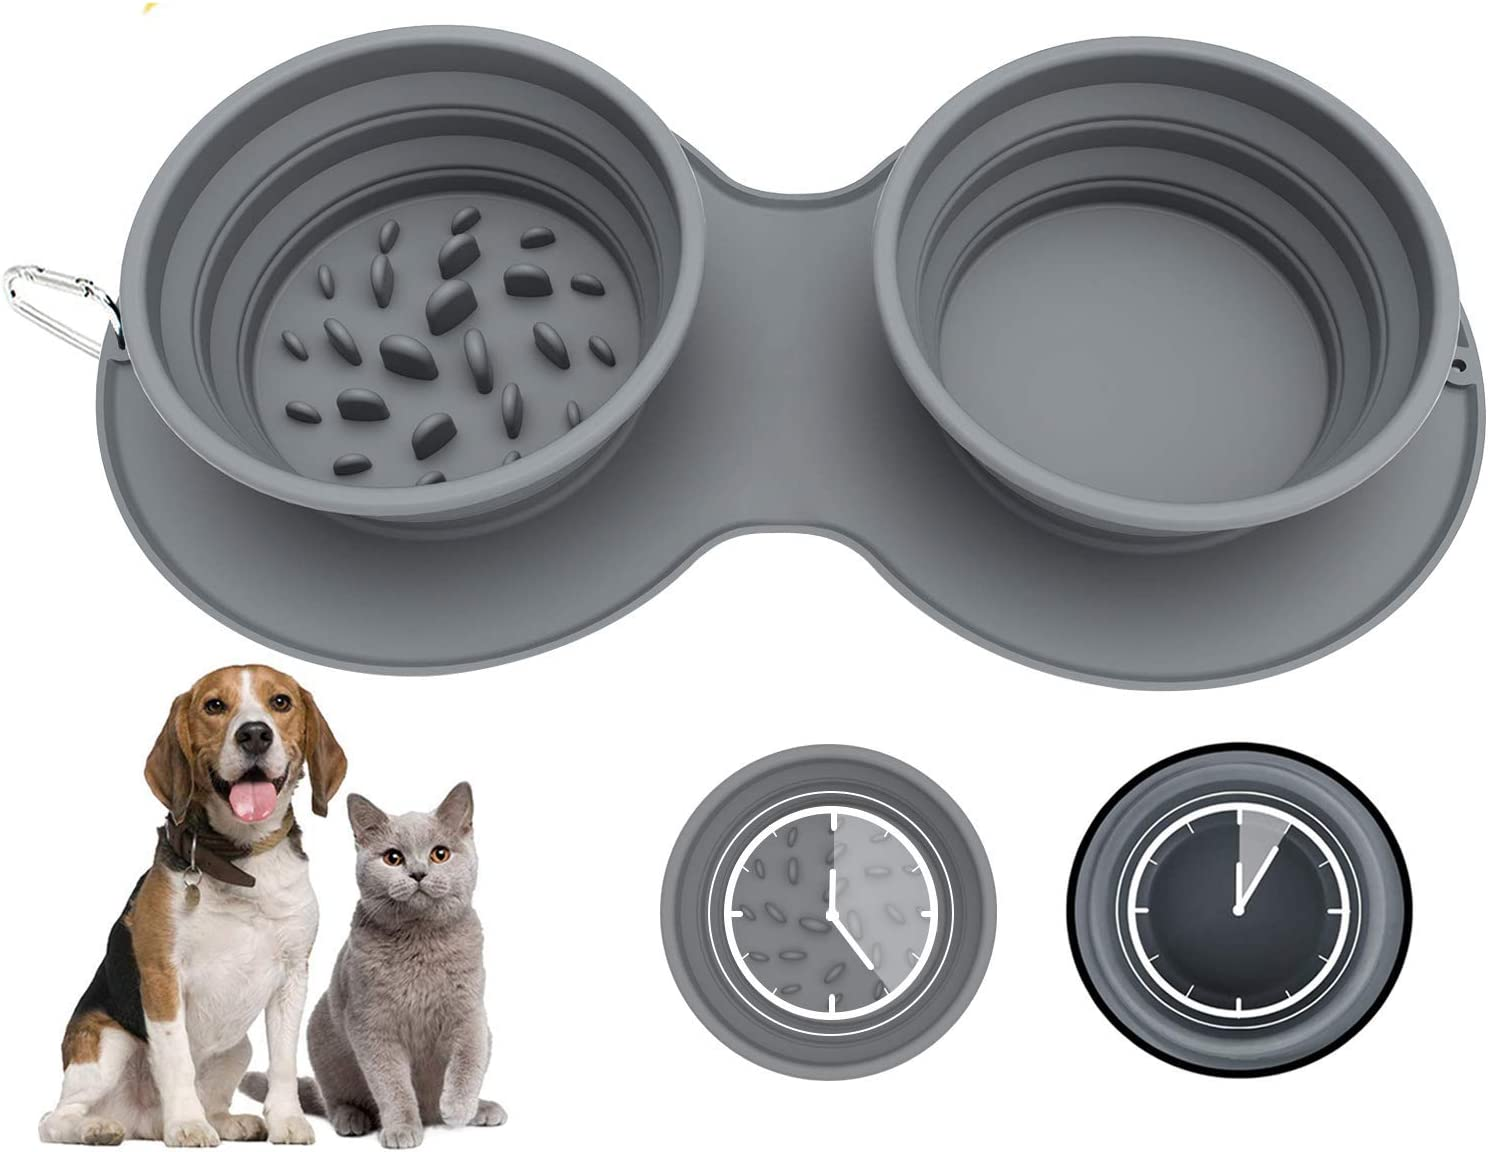 Aibada Double Collapsible Dog Bowl, Food Grade Silicone BPA Free Portable Dog Bowl, Foldable Cup Dish for Pet Cat Food Water Feeding Portable Travel Bowl (Grey)